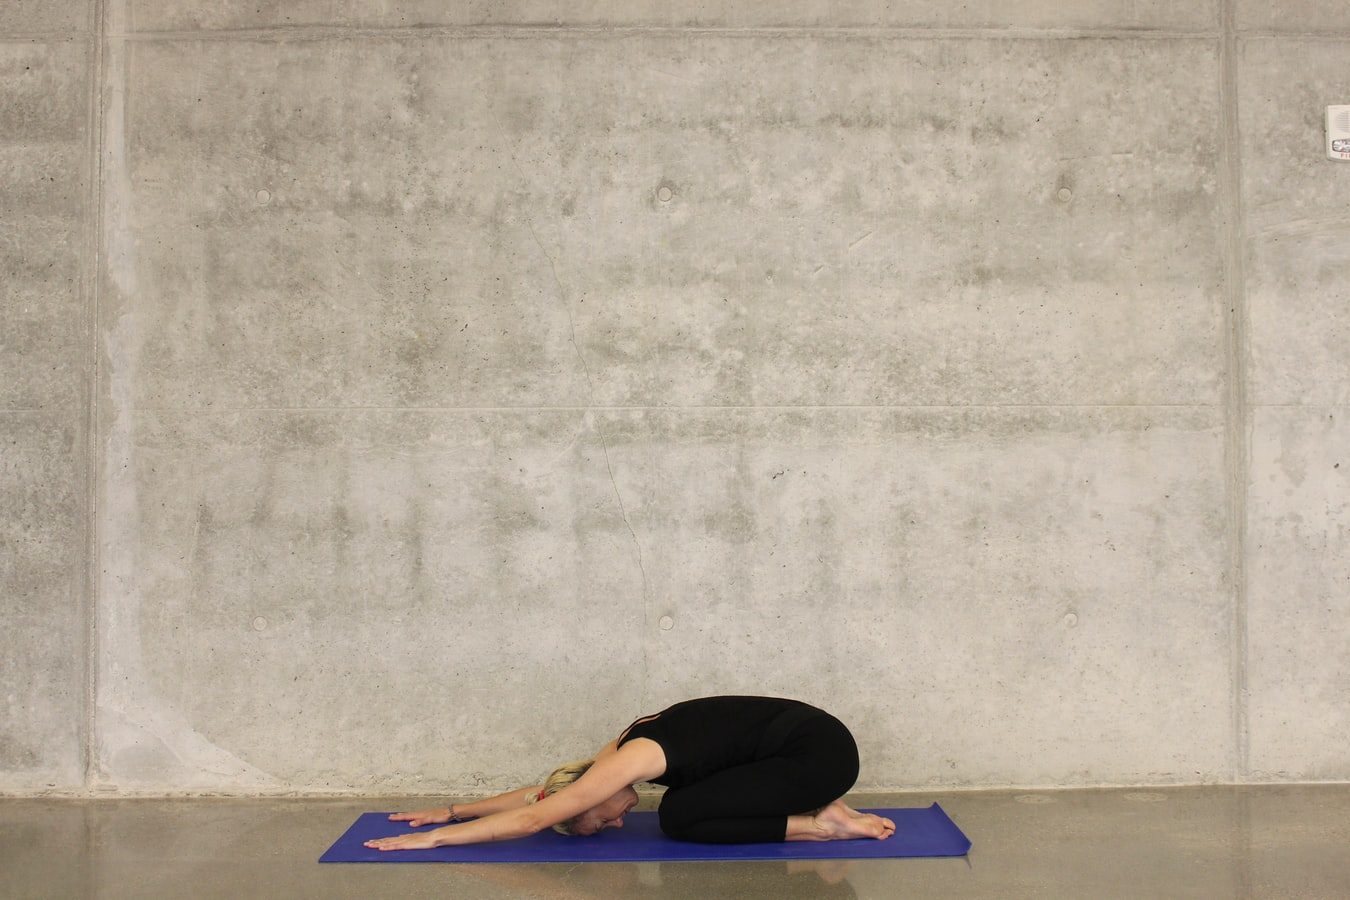 A woman stretching on a yoga man. Stretching is a great way to help seniors stay active